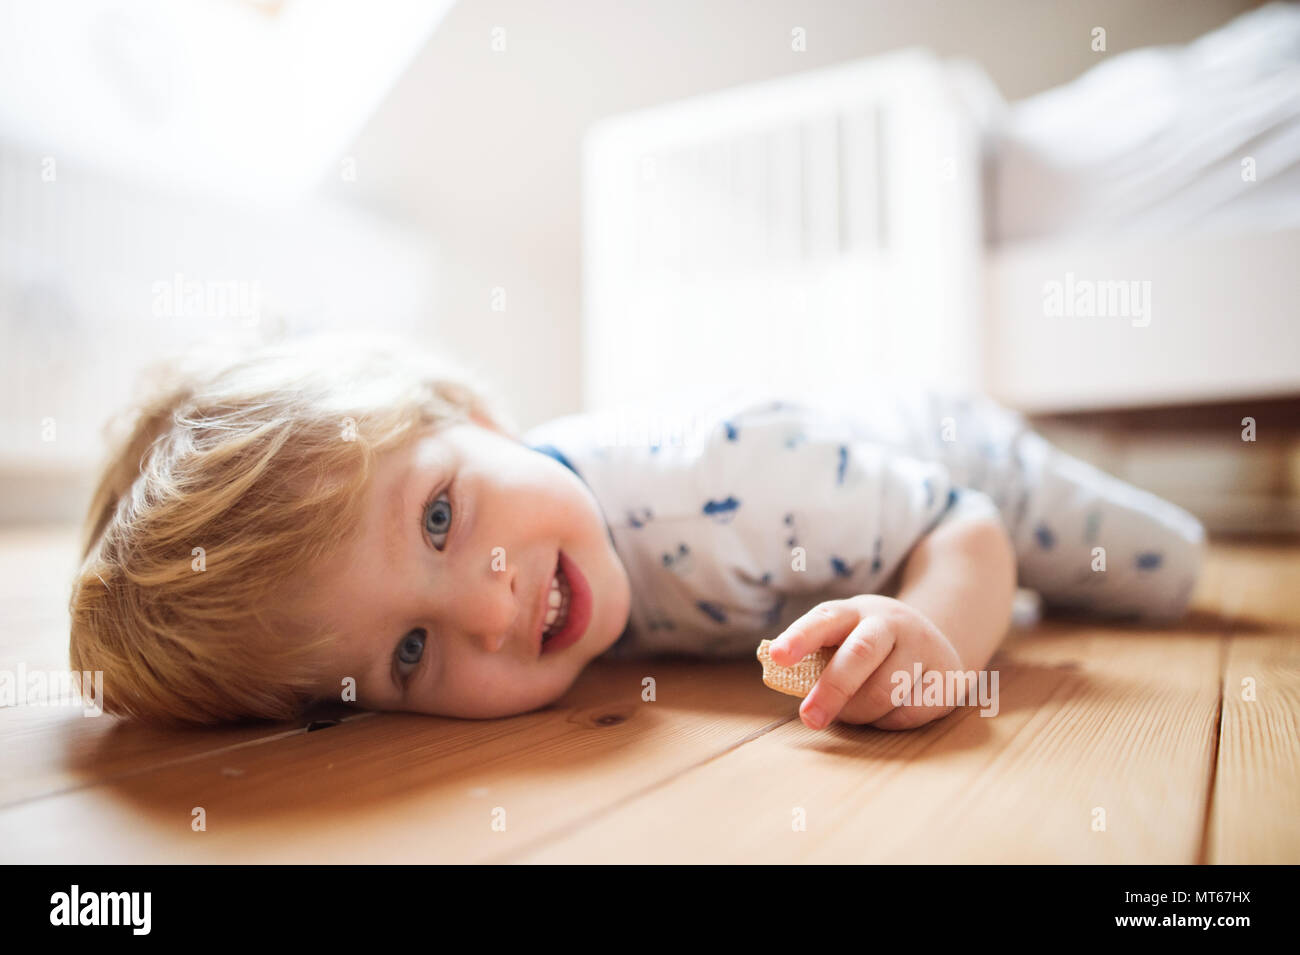 A toddler boy on the floor in the bedroom at home. - Stock Image